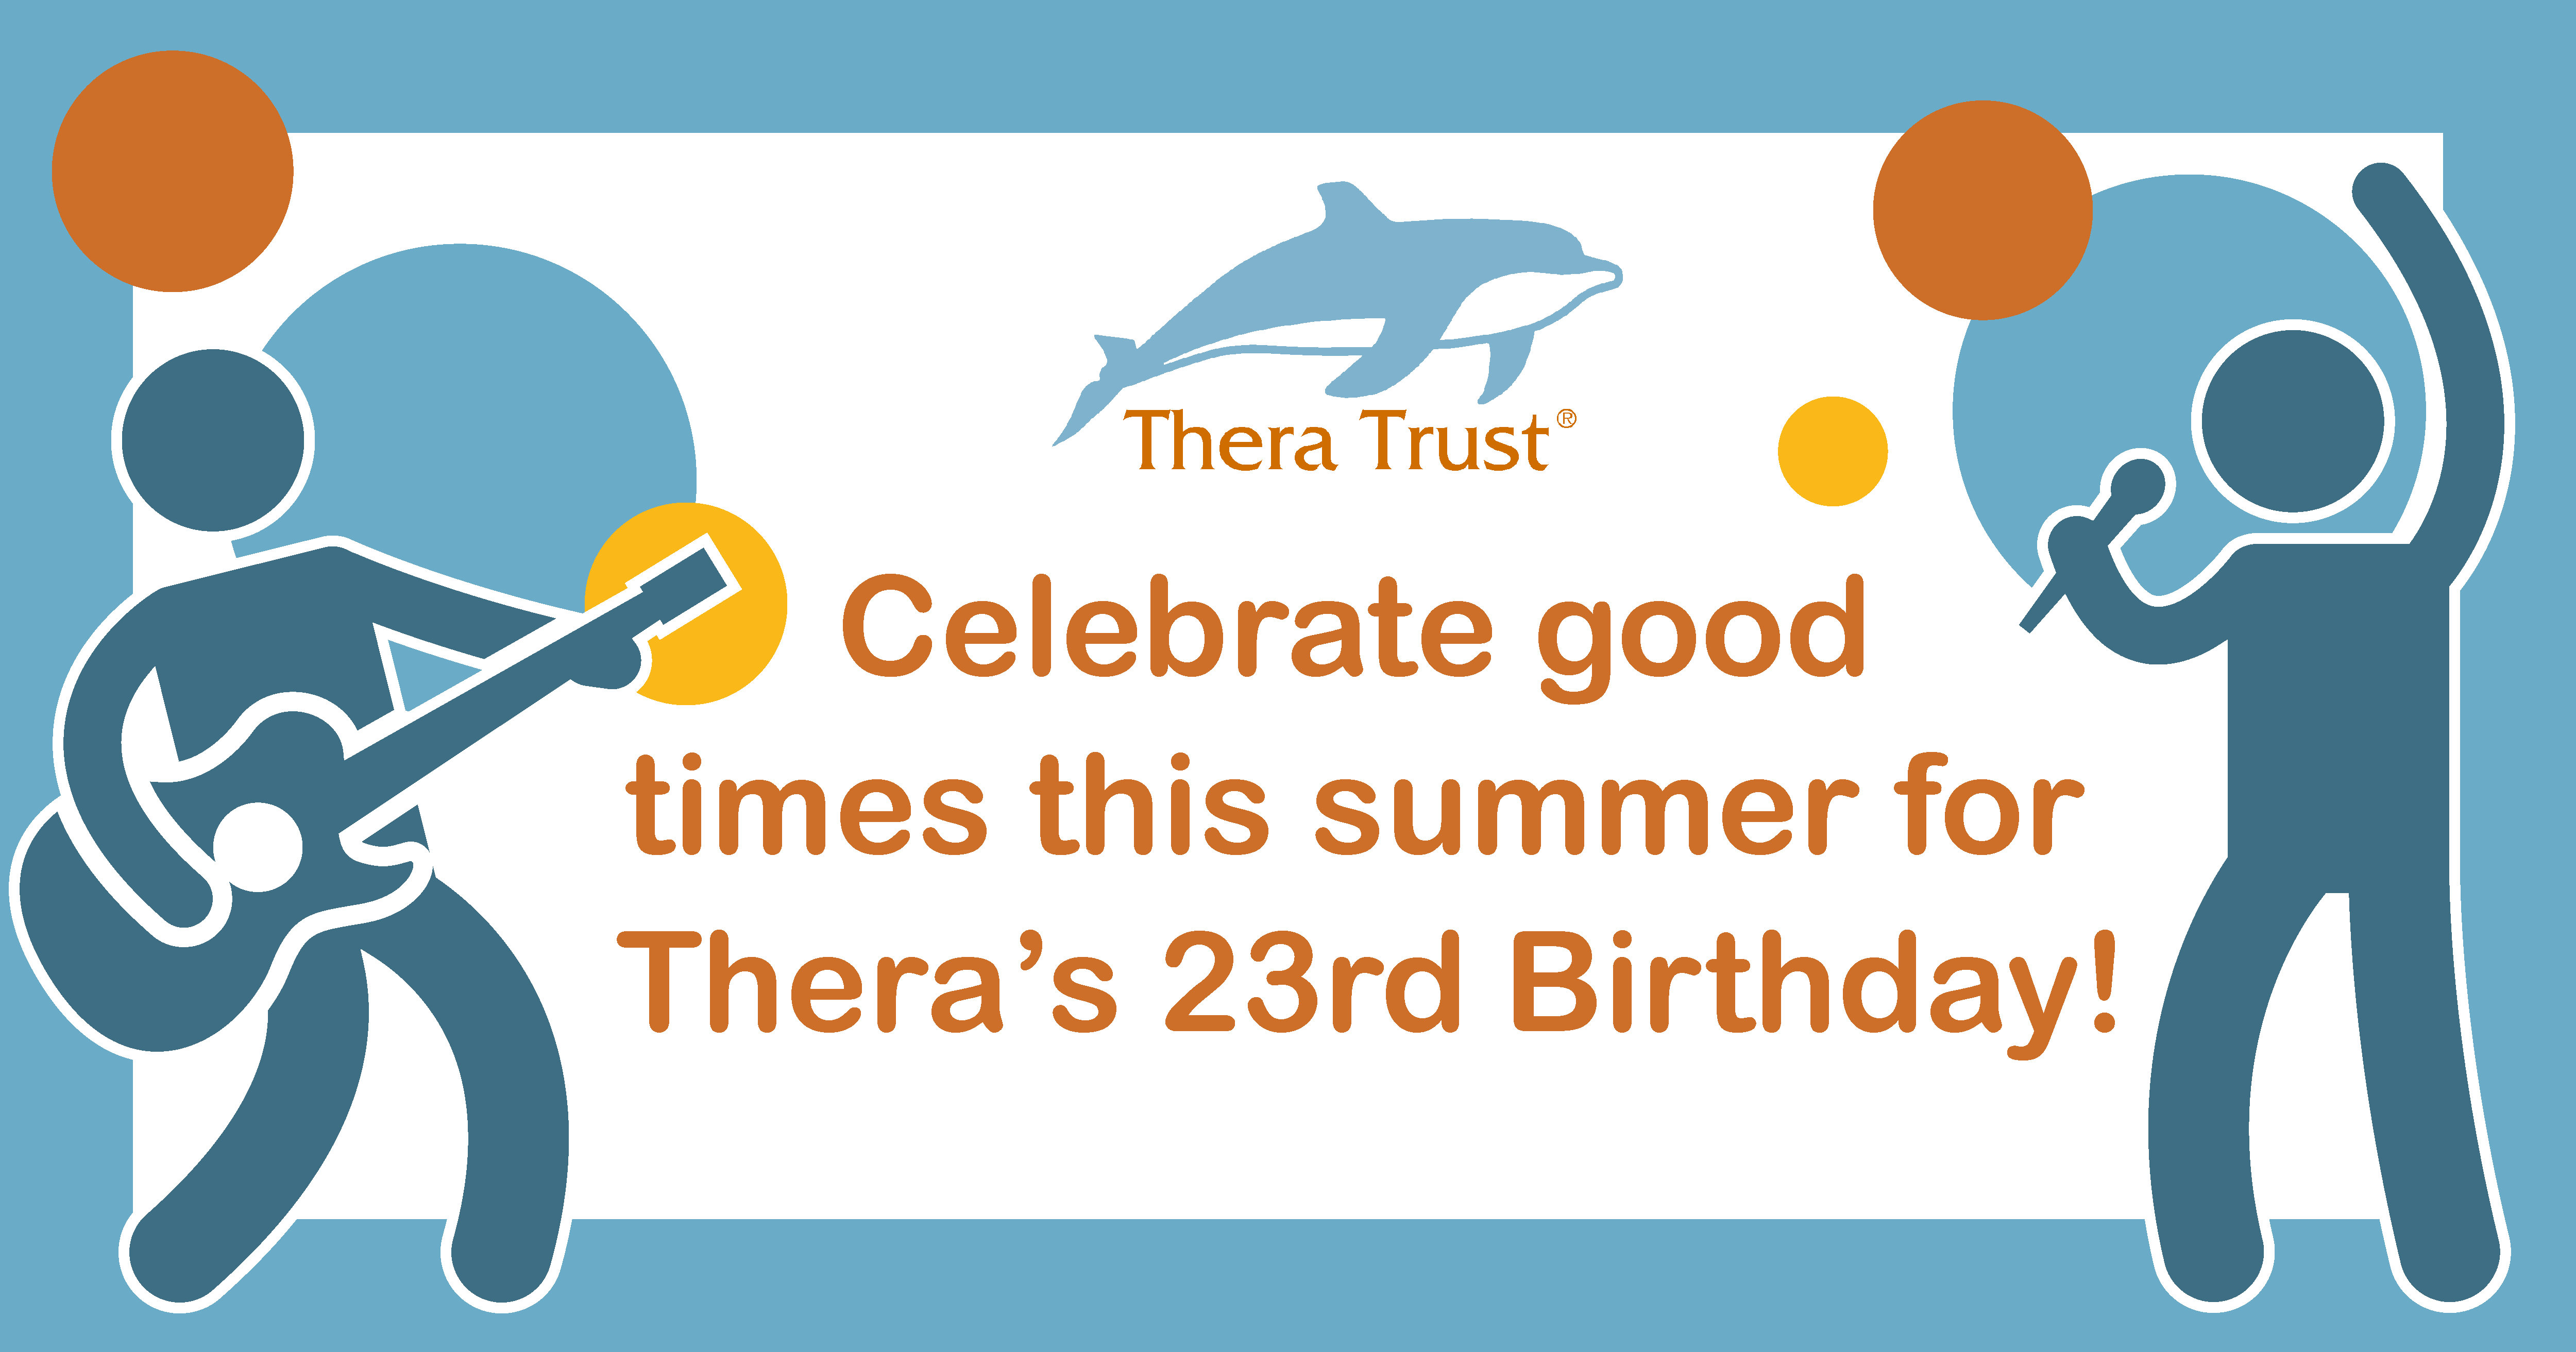 Celebrate good times this summer for Thera's 23rd birthday